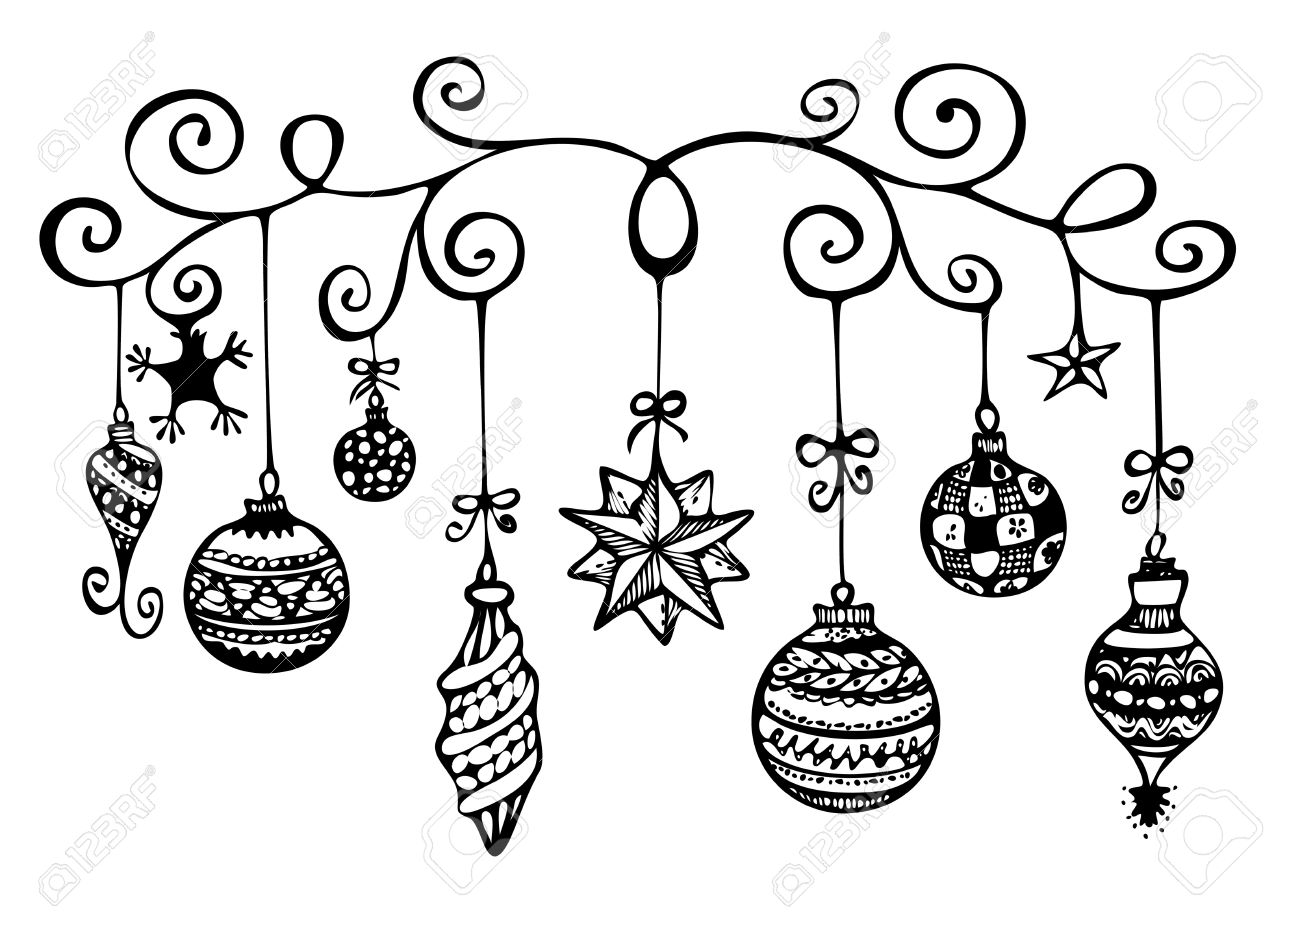 Christmas ornaments sketch in black and white stock photo 16979852